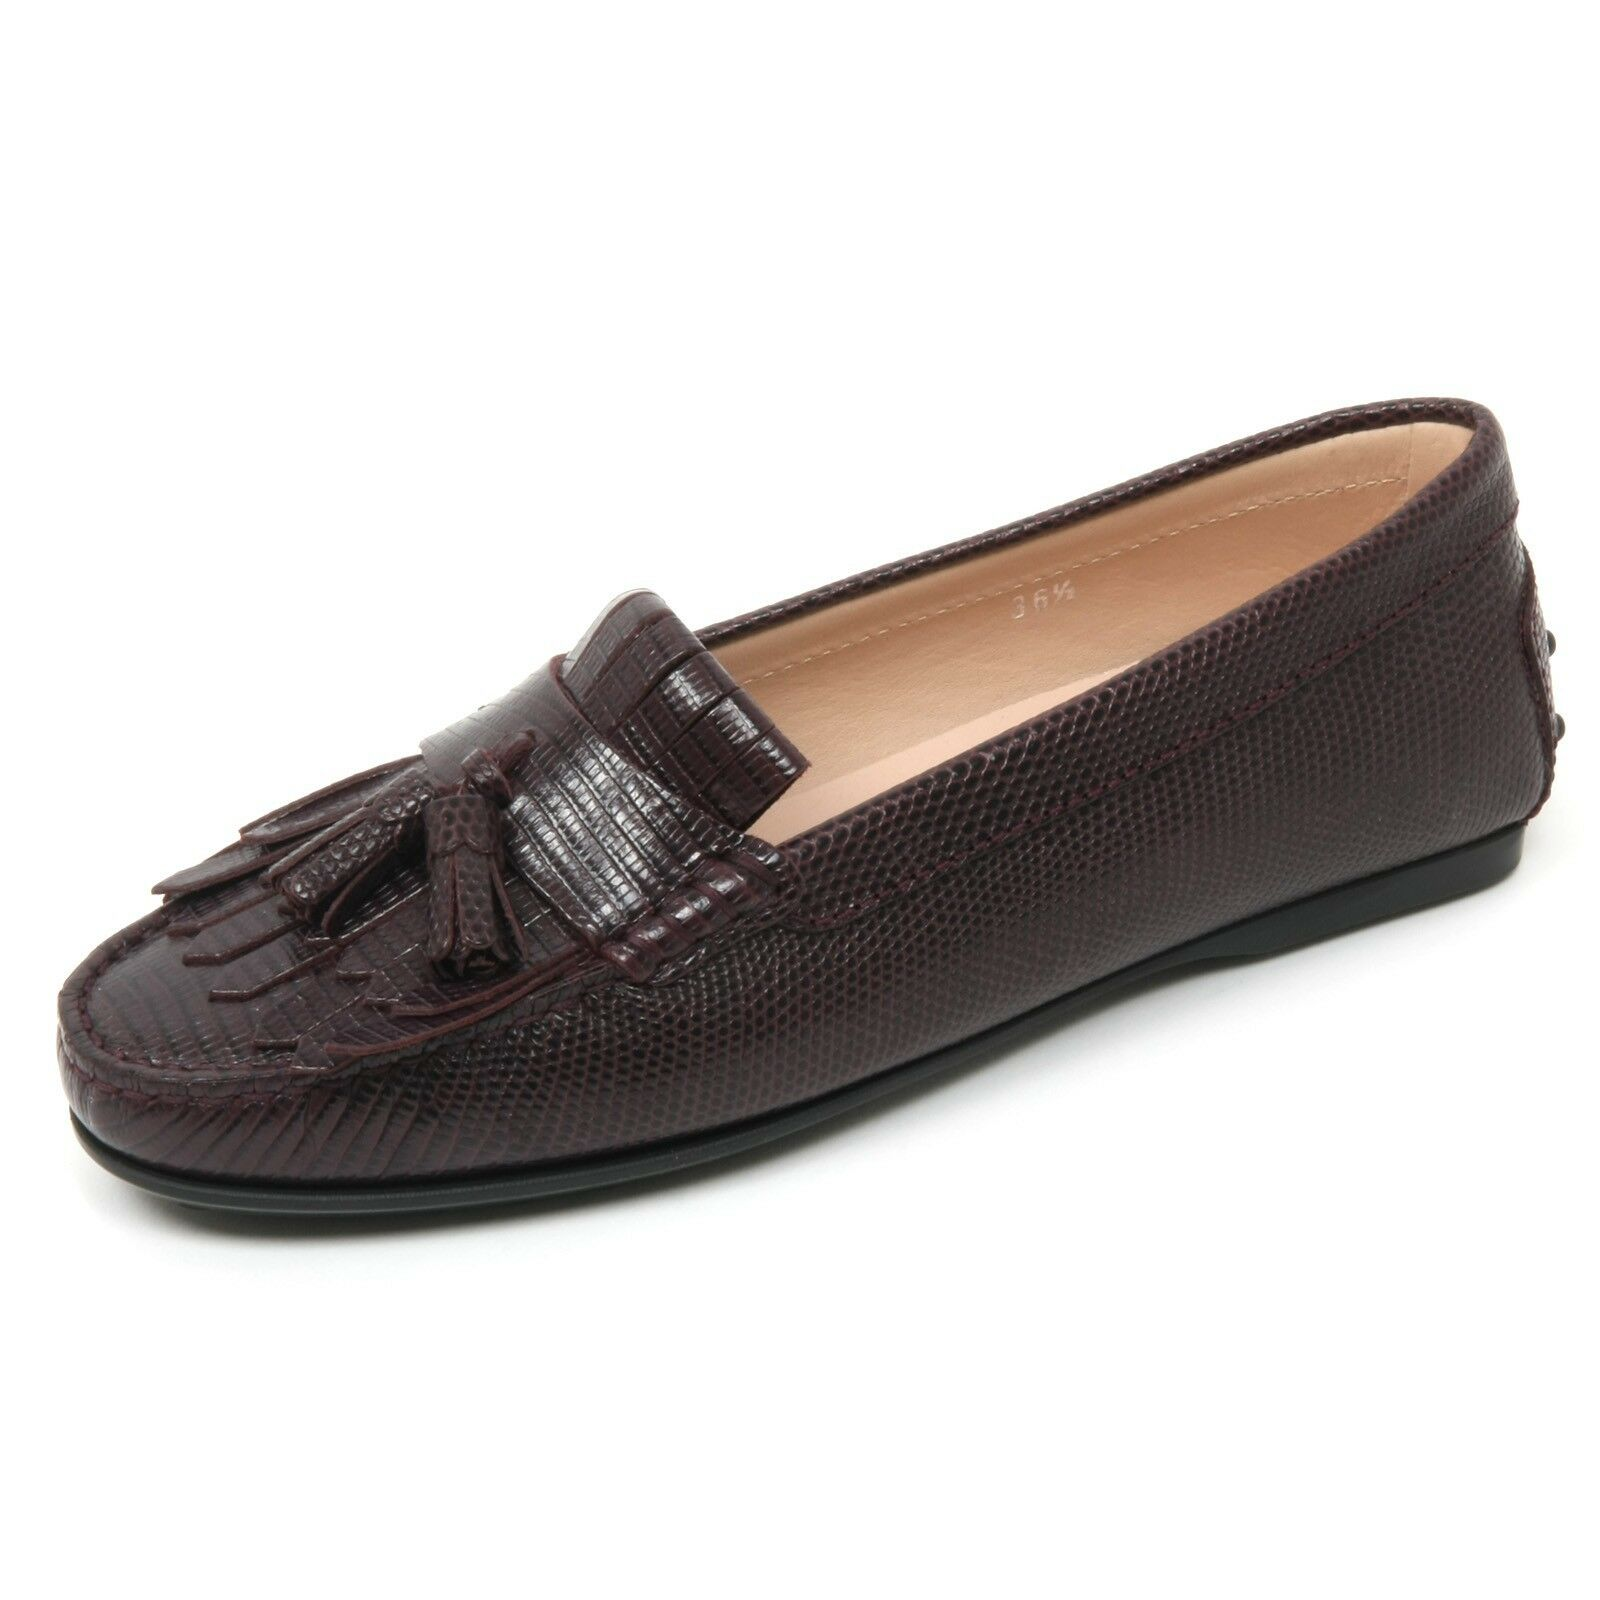 B9558 mocassino donna loafer TOD'S scarpa frangia nappine bordeaux loafer donna shoe woman c584b4